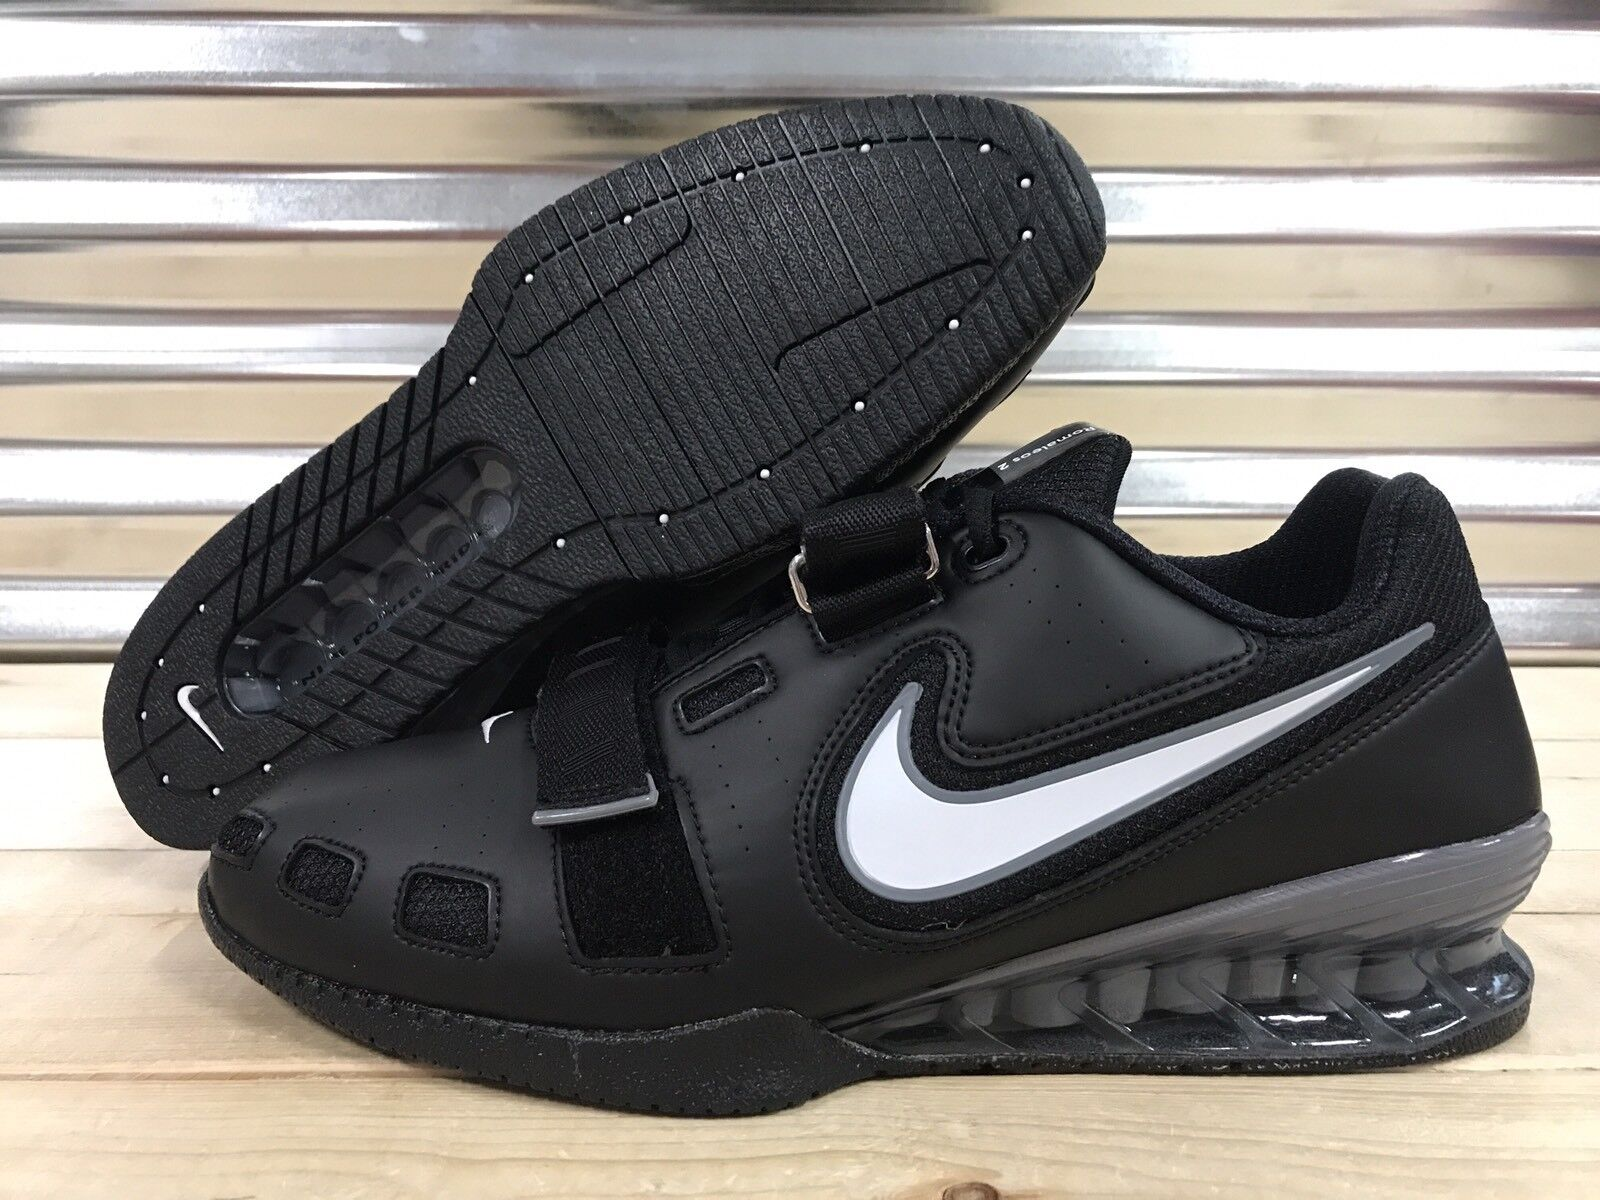 3ecc59648d1a Nike Romaleos 2 Weightlifting Powerlifting Shoes Black Gray SZ ( 476927-010  )